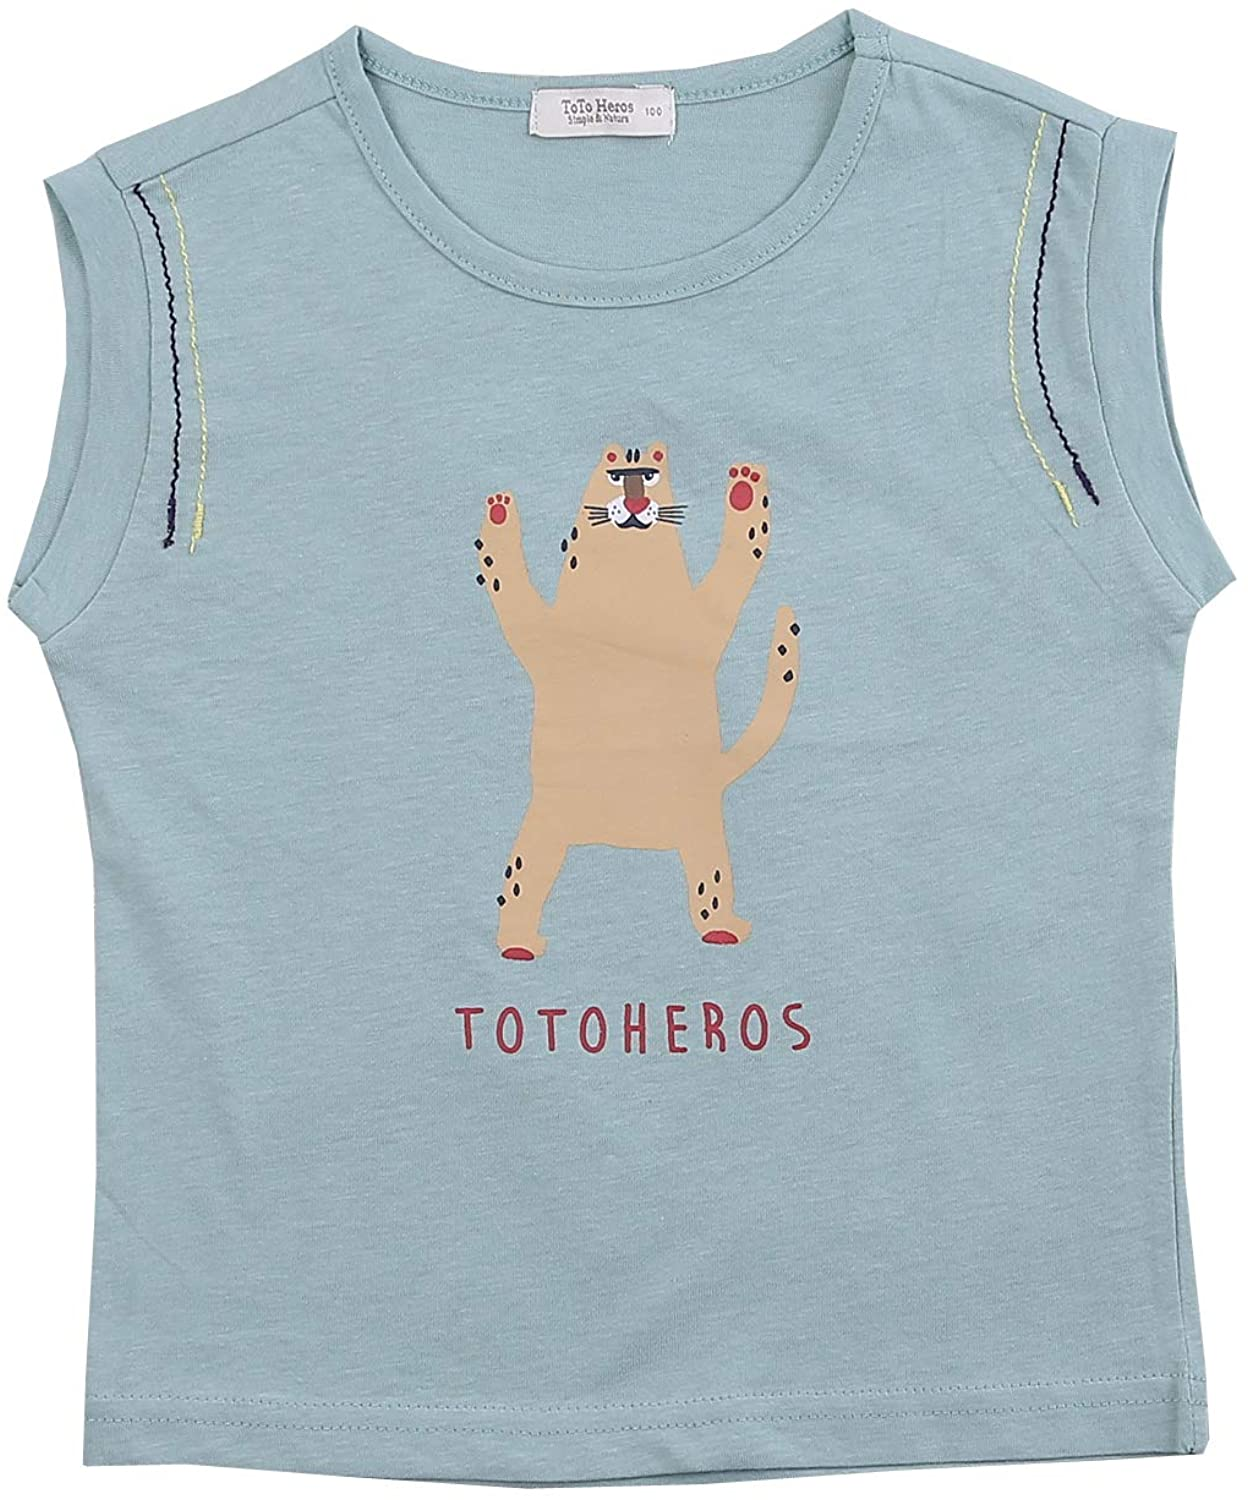 TOTO HEROS Boys Tiger Sleeveless Shirt Everyday Casual T Shirt Tee Fun T-Shirt 100% Cotton Relaxed fit